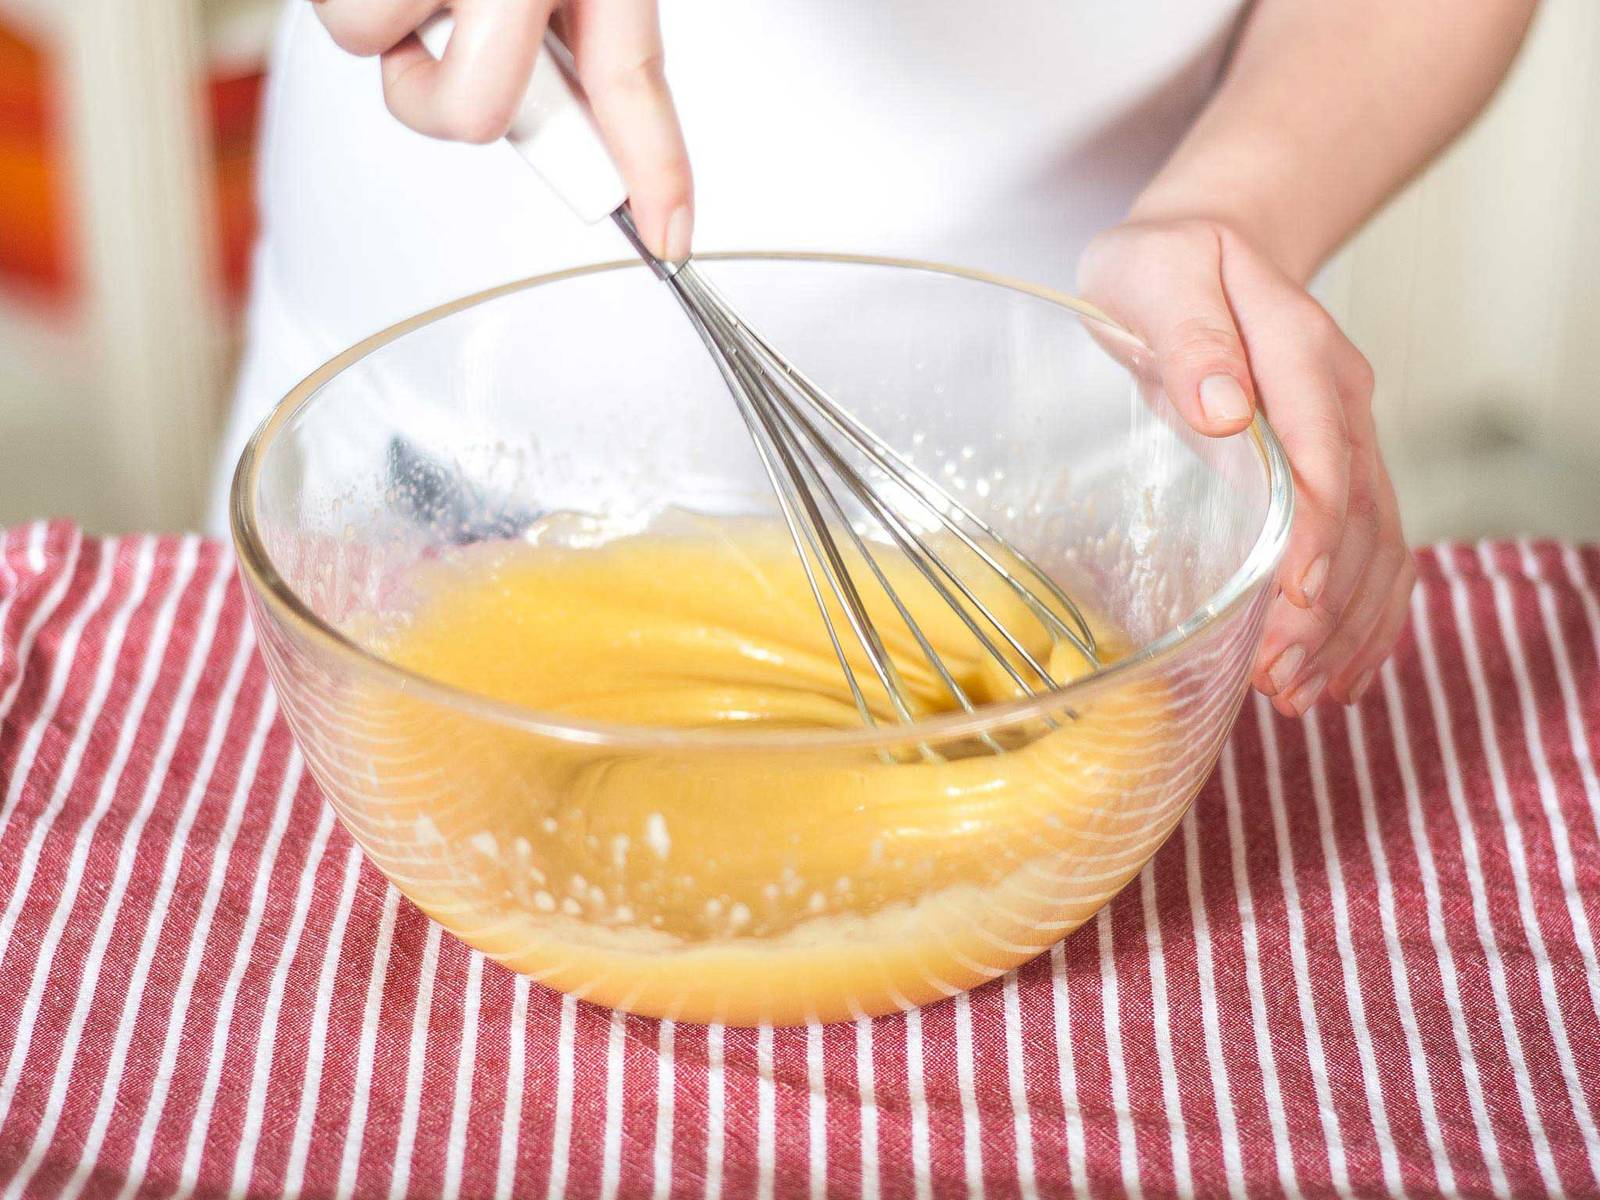 Add the warm advocaat to the chocolate mixture and whisk until well combined. Leave the mixture to chill for approx. 20 min.